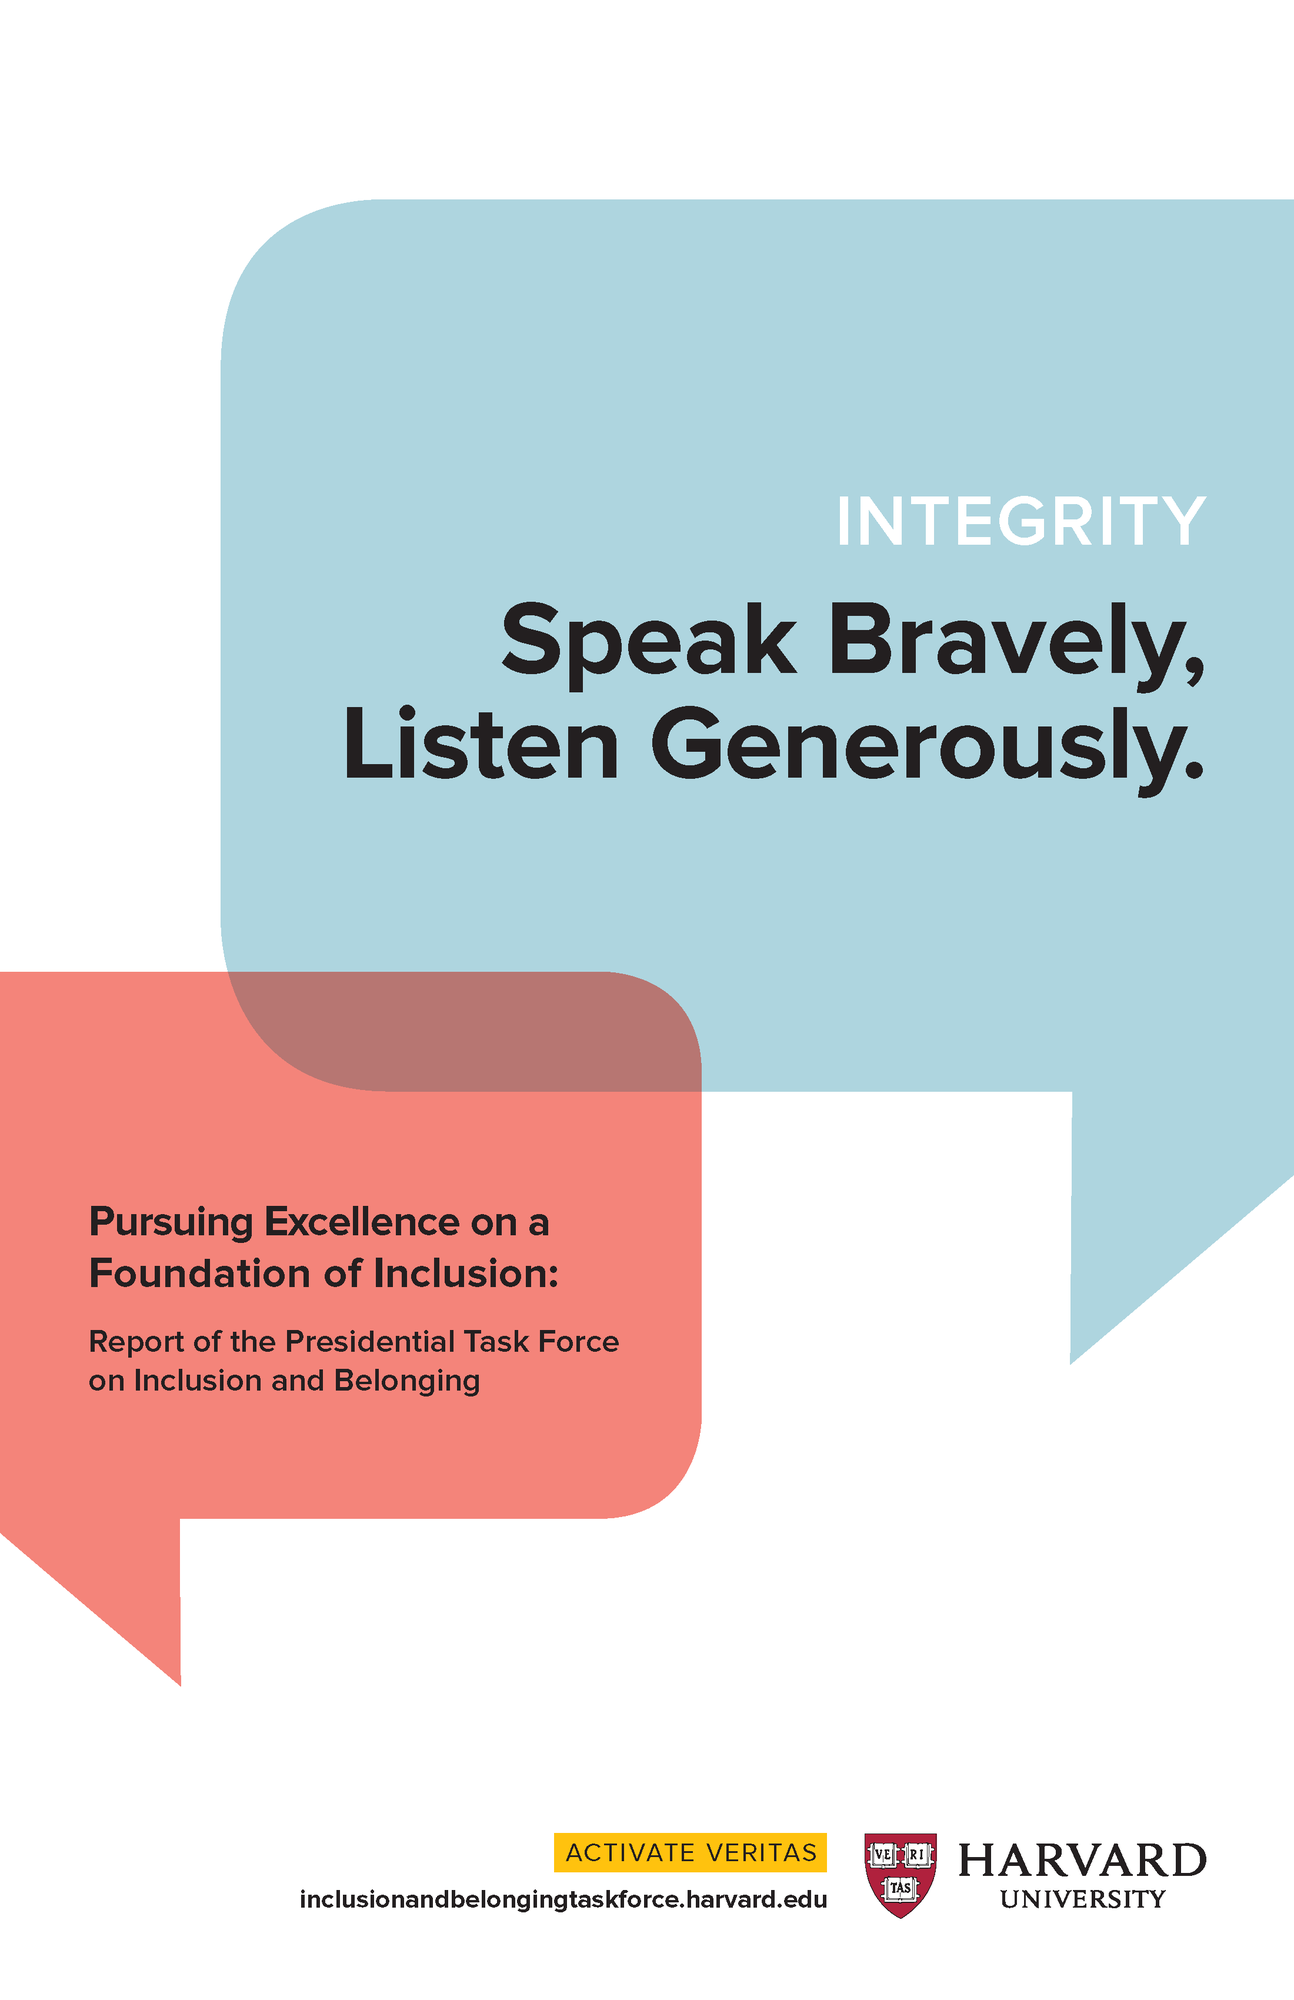 Integrity: Speak Bravely, Listen Generously.